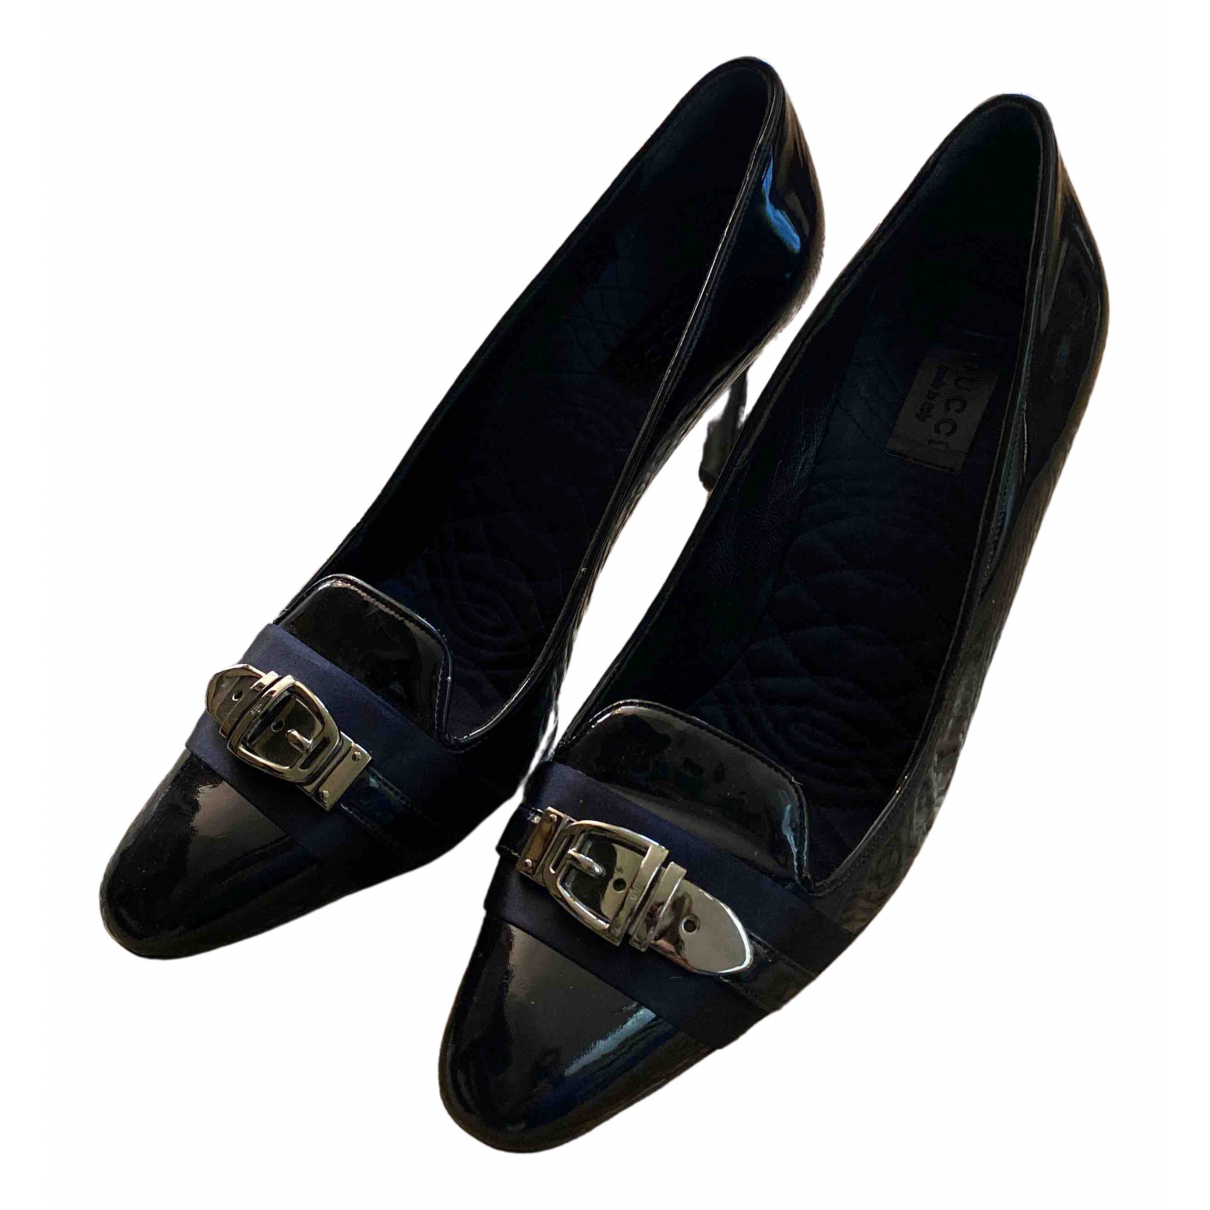 Gucci N Black Patent leather Heels for Women 39.5 EU